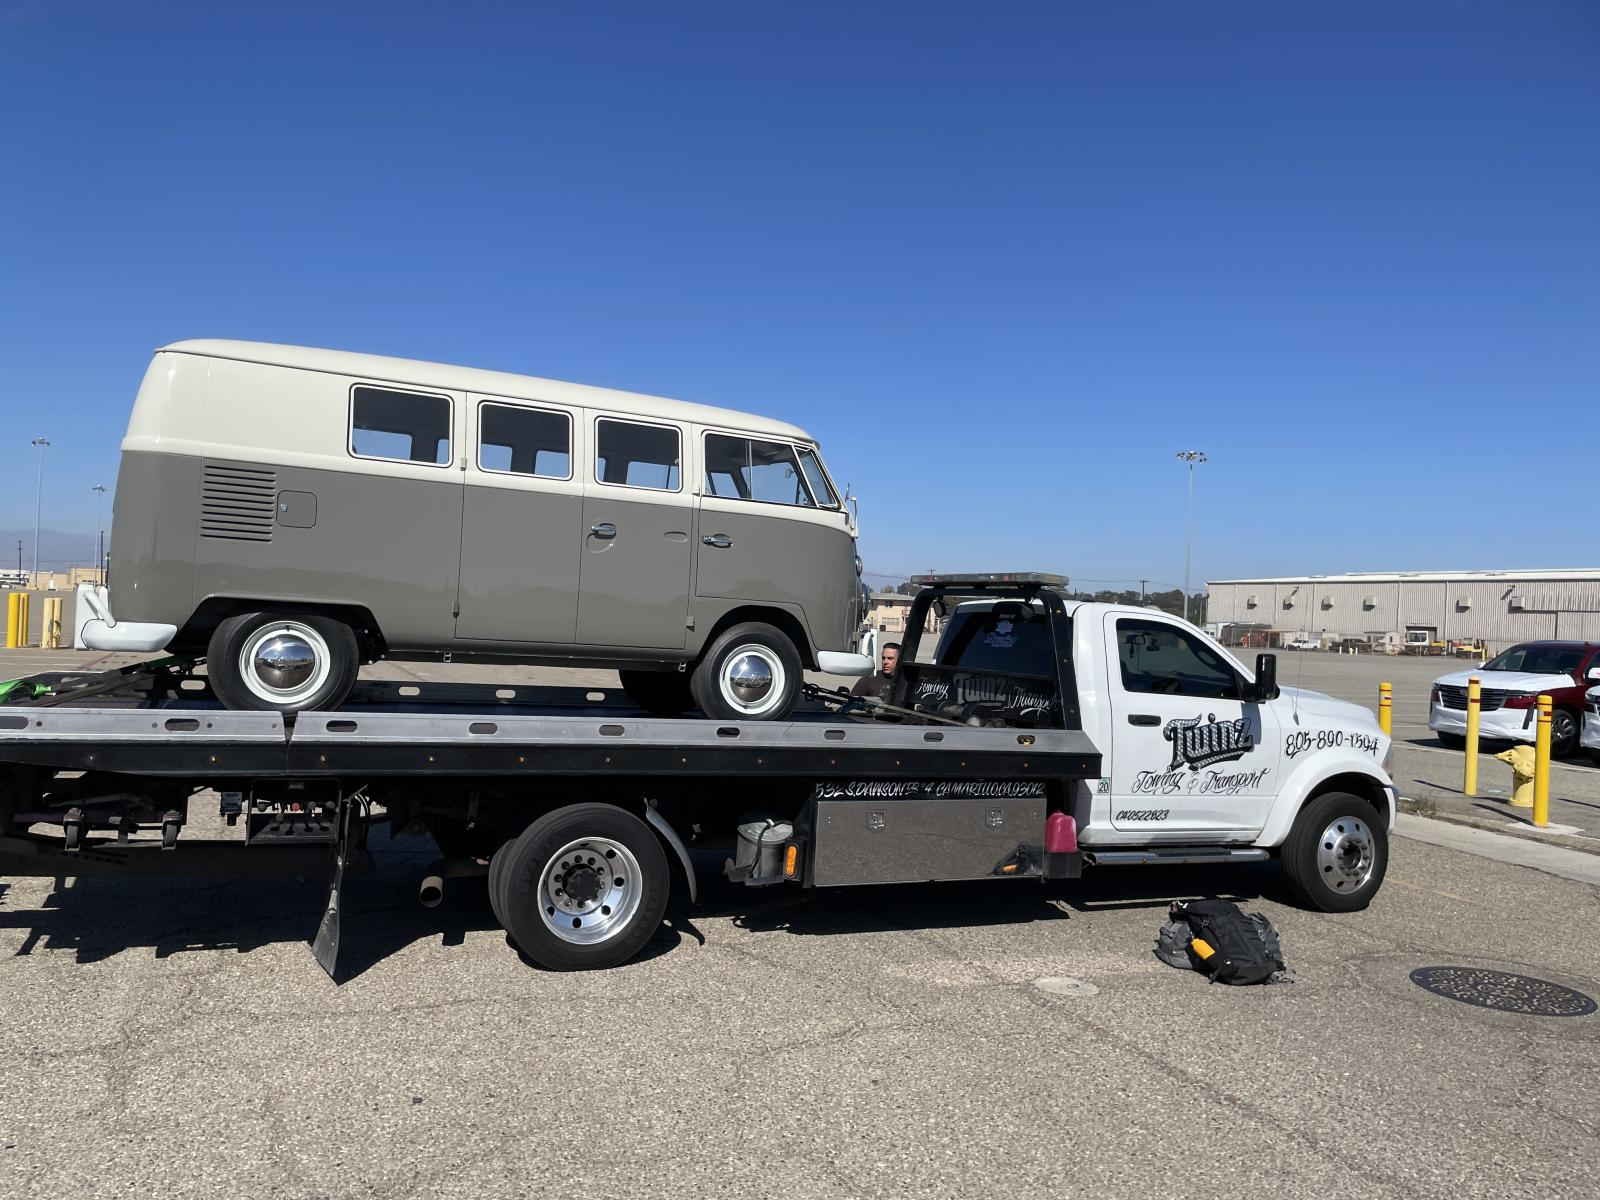 Vw Bus Tow